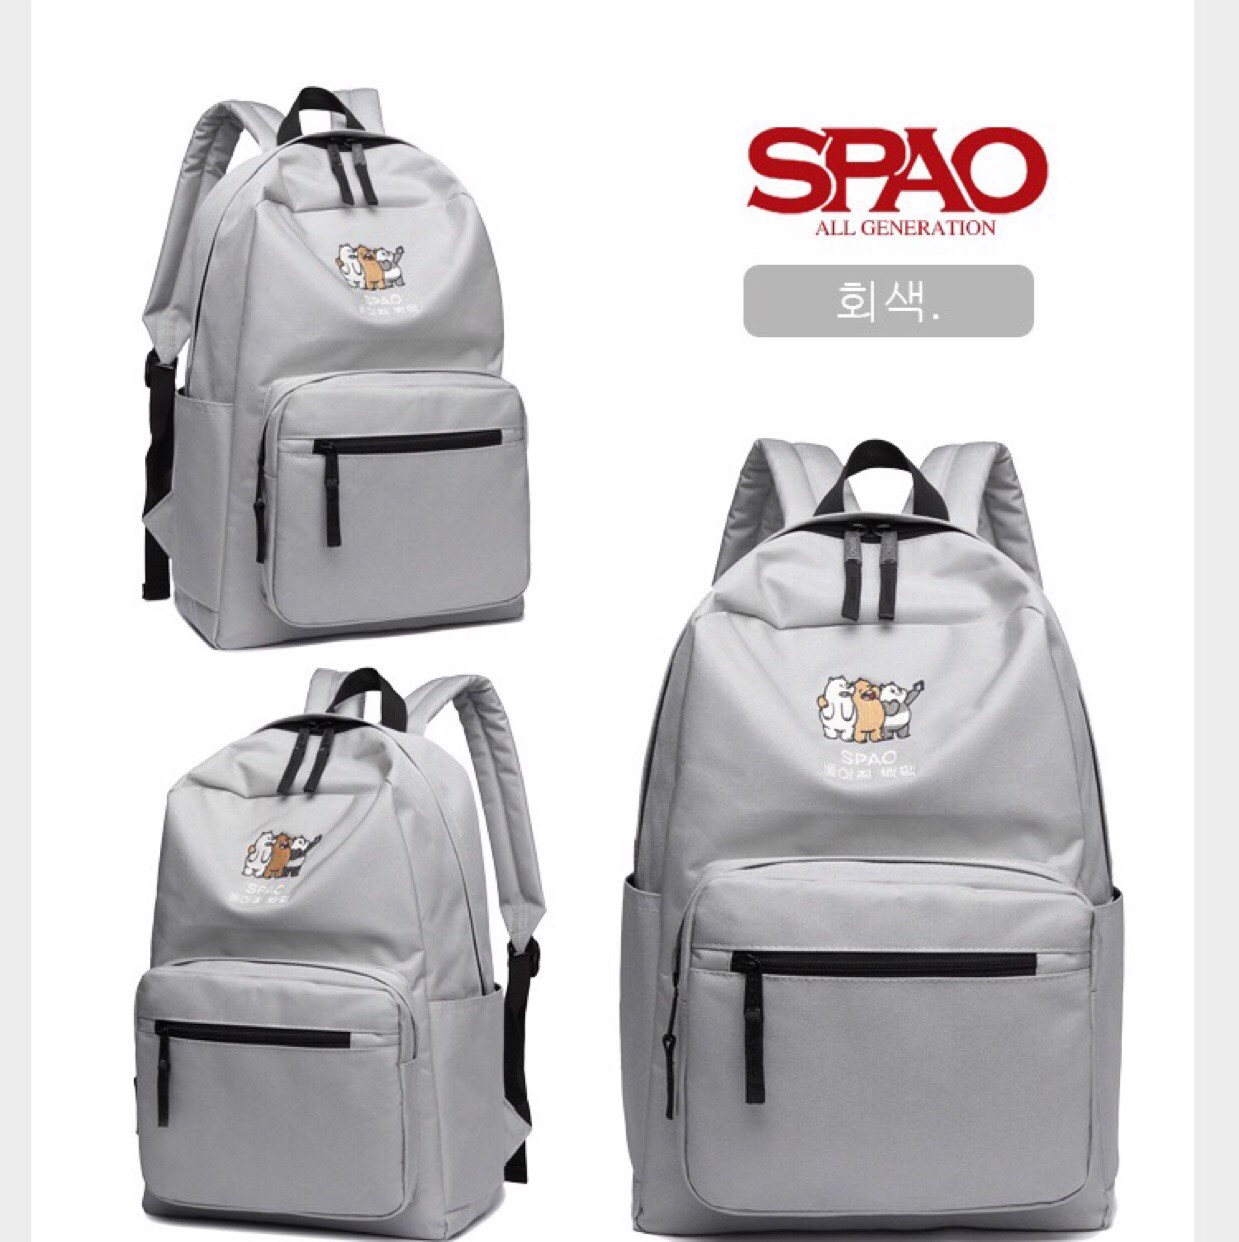 BALO SPAO AUTHENTIC WE BARE BEARS BACKPACKS CHÍNH HÃNG